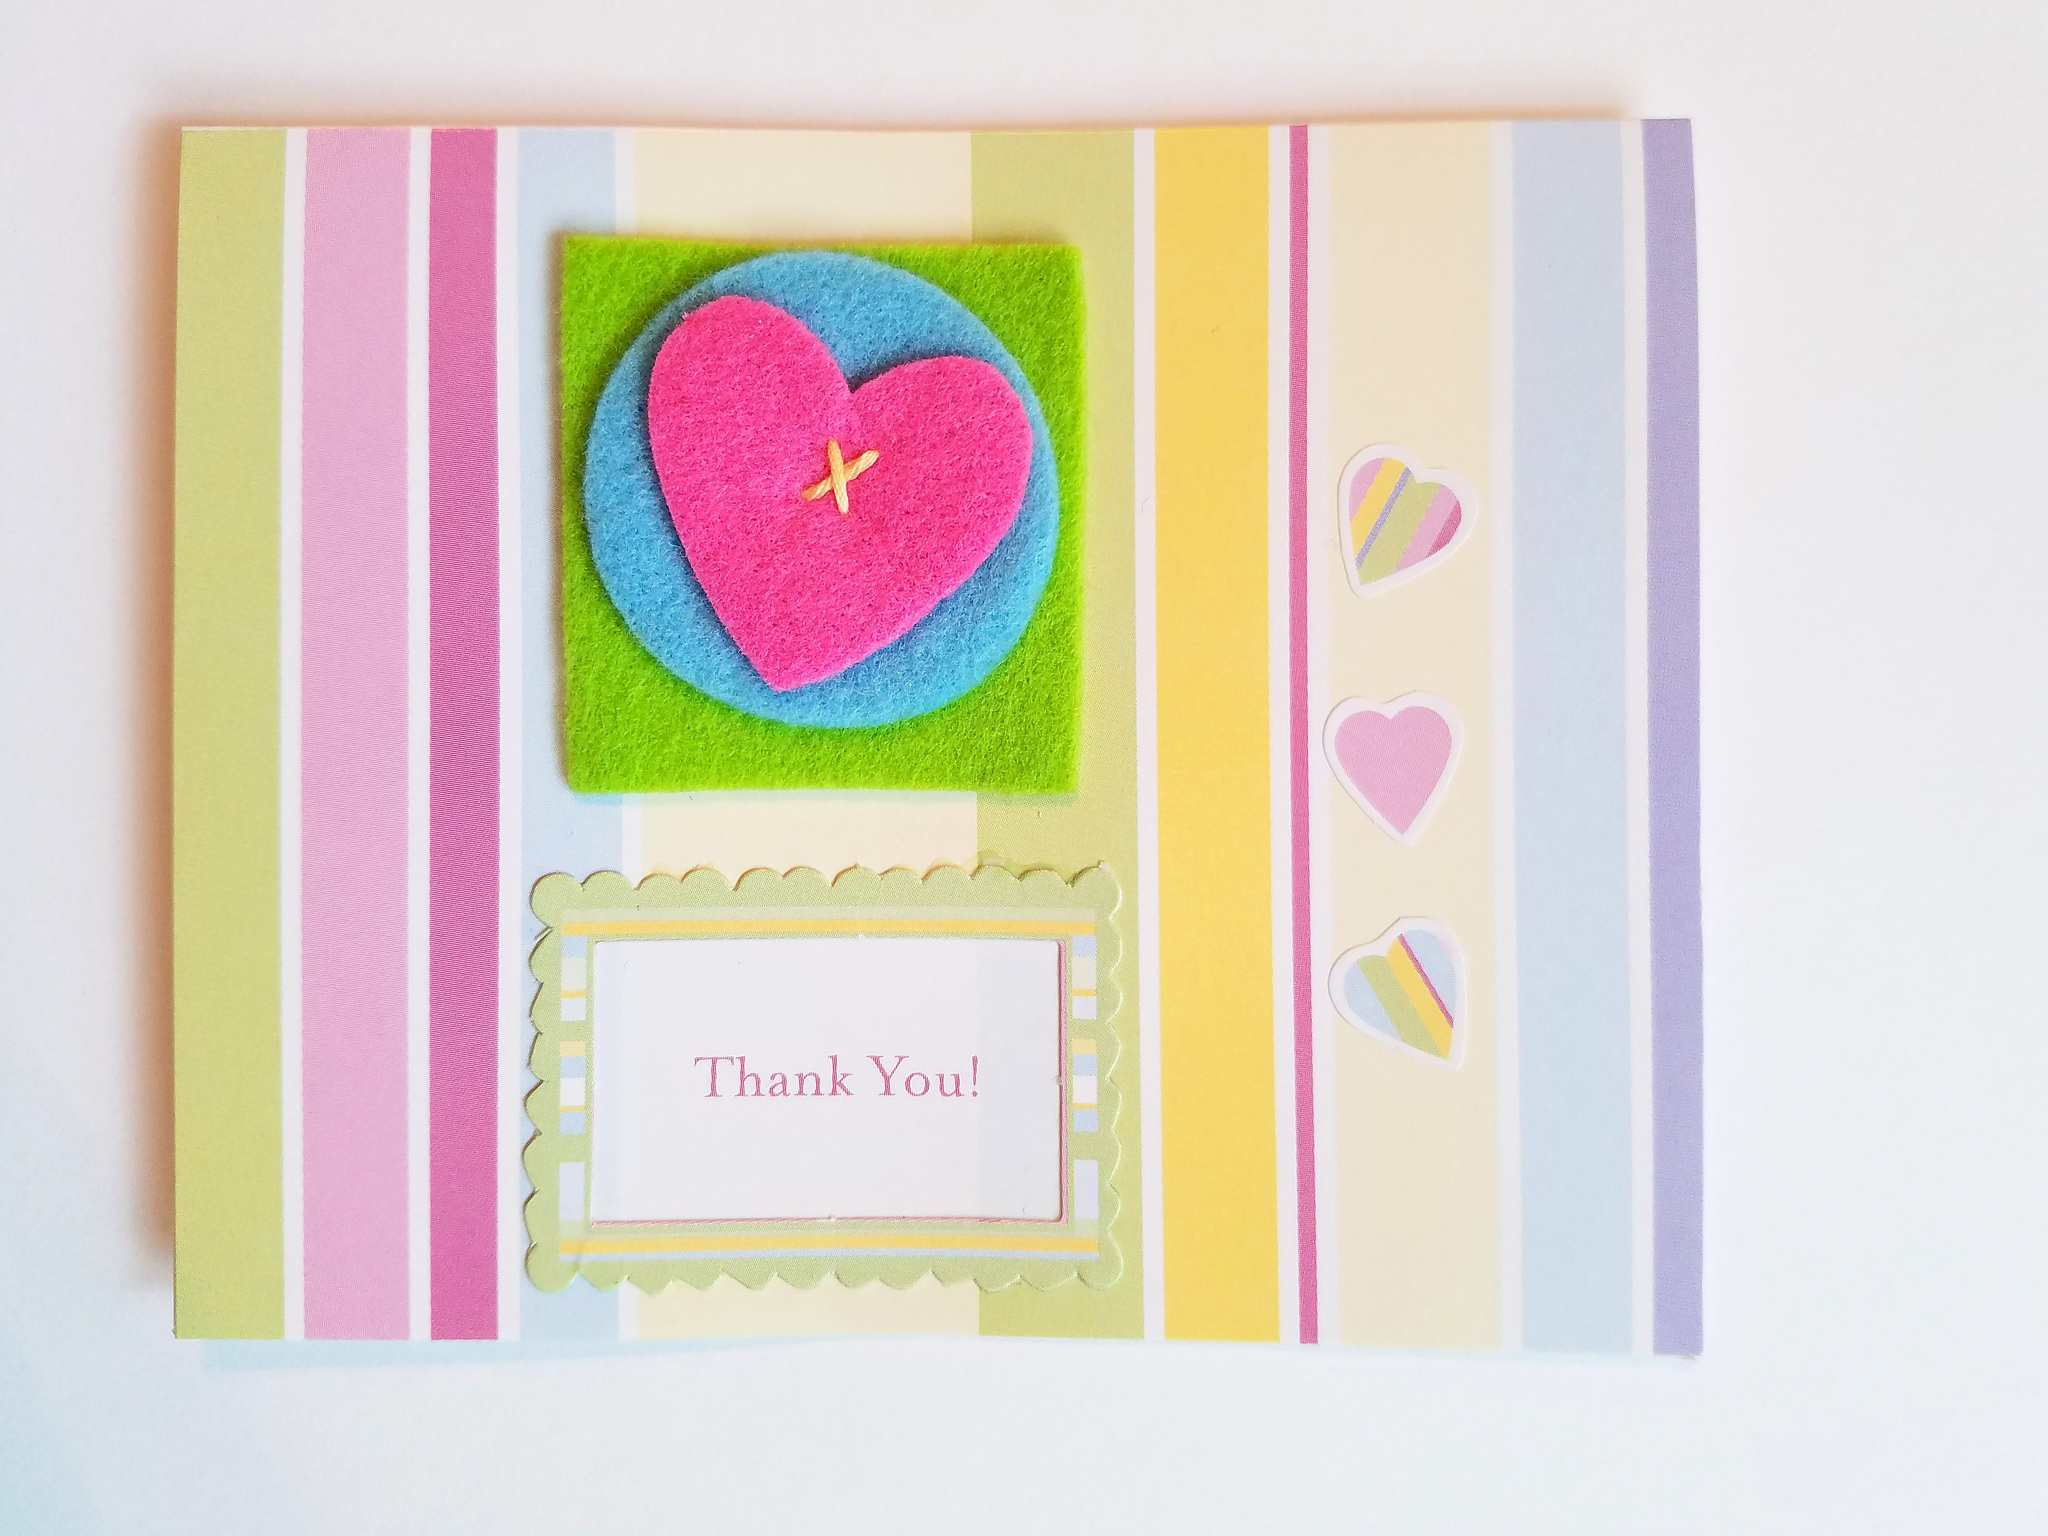 Free, Printable Baby Shower Thank You Cards - Free Printable Soccer Thank You Cards